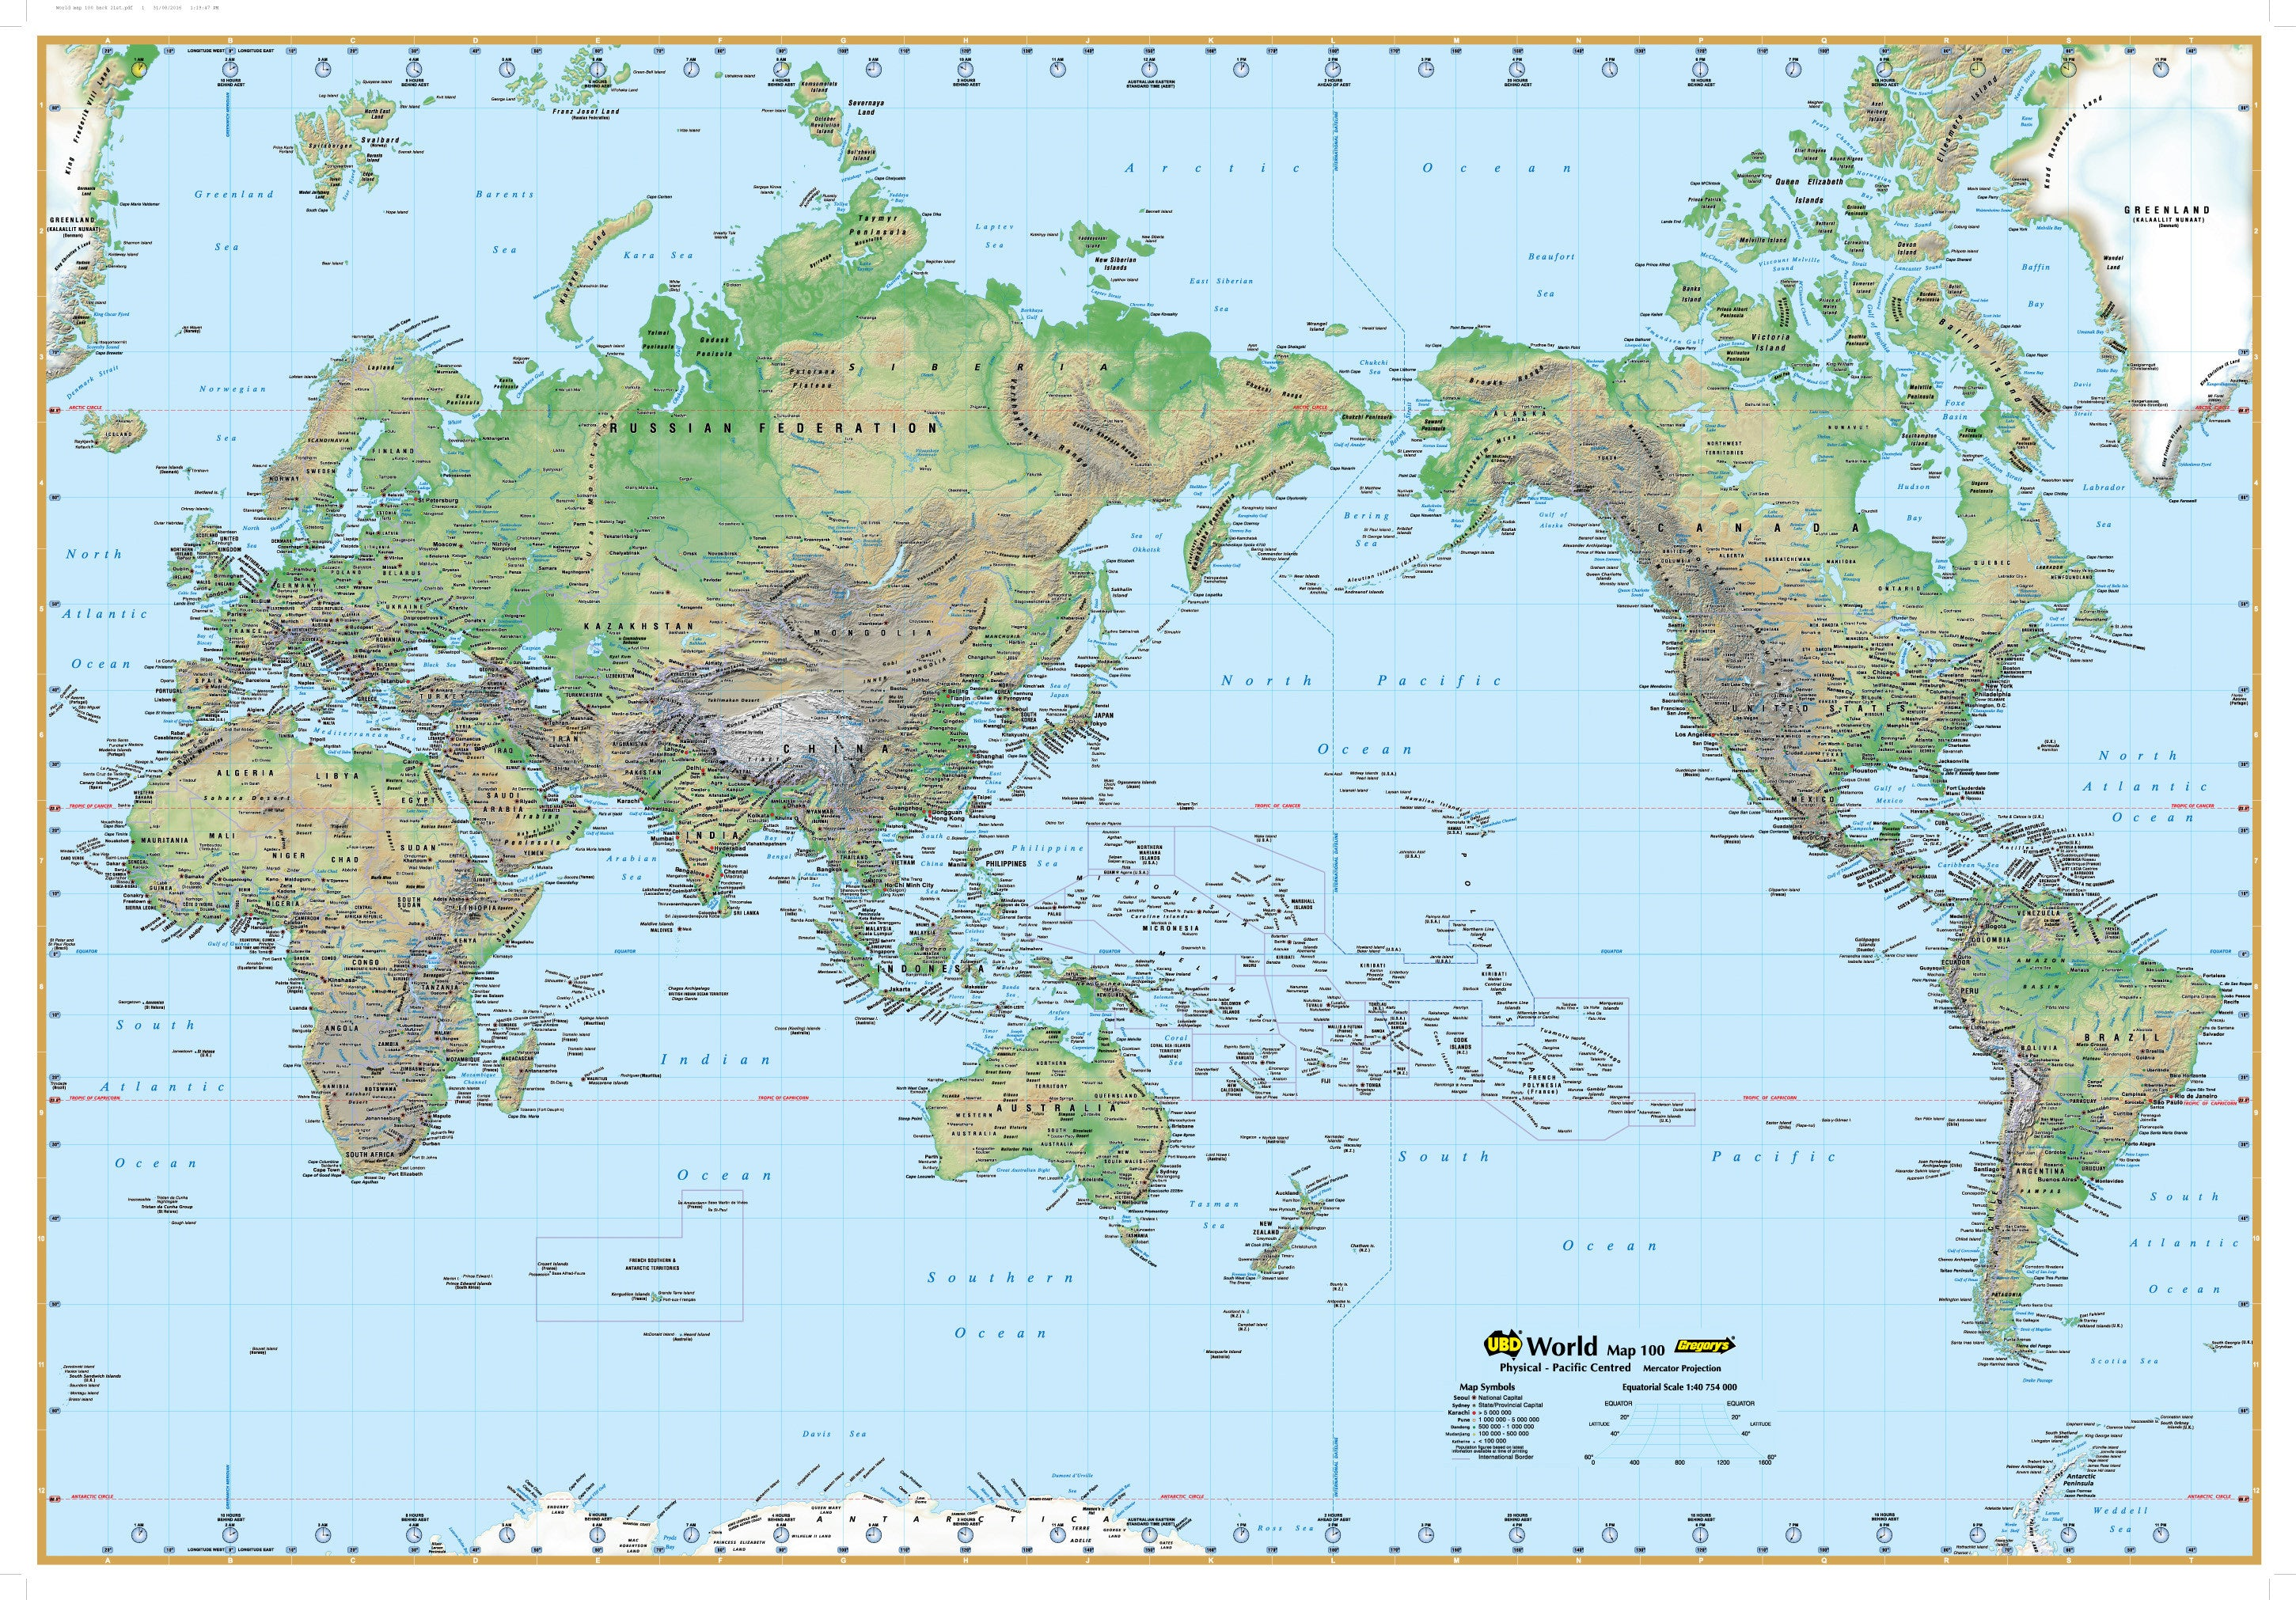 Huge Map Of The World.World Physical Mega Map Ubd 2000 X 1405mm Laminated With Hang